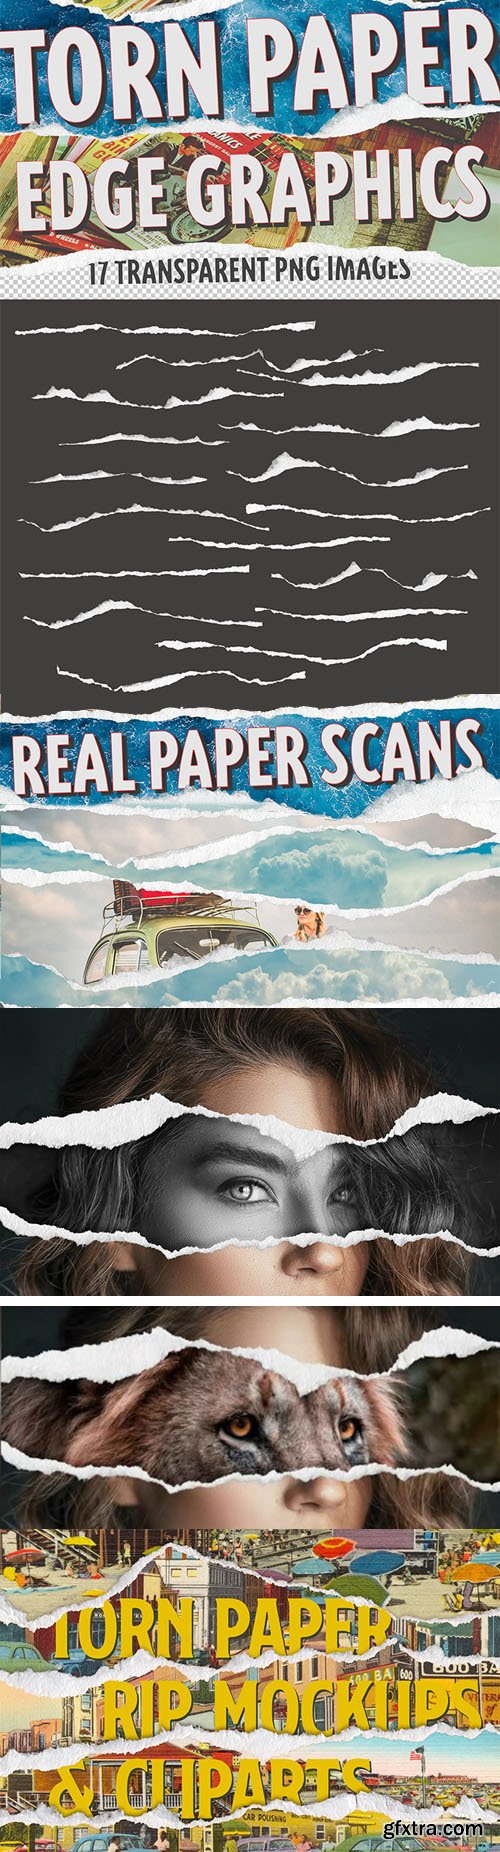 17 Torn Paper Edges - Real Paper Scans